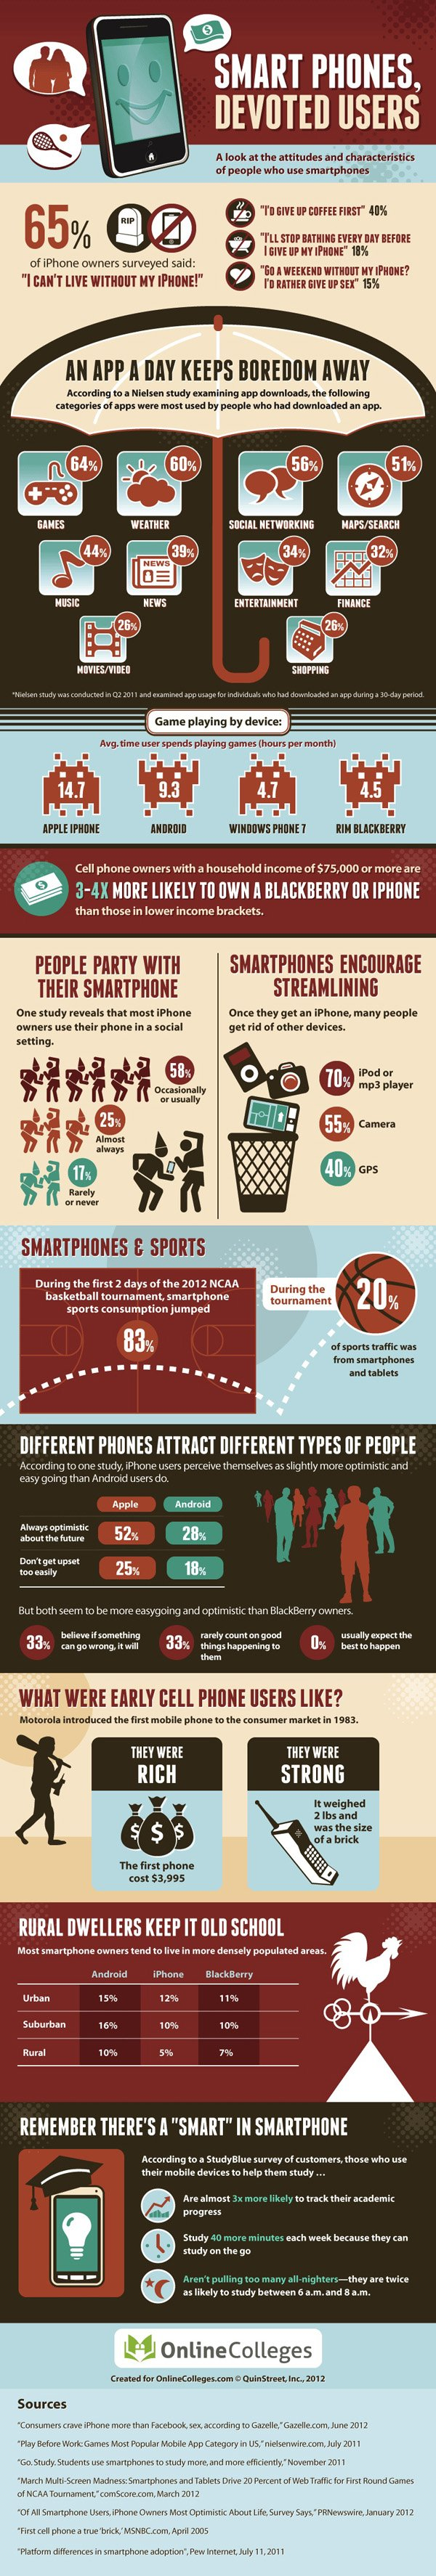 smartphone-devoted-users-infographic